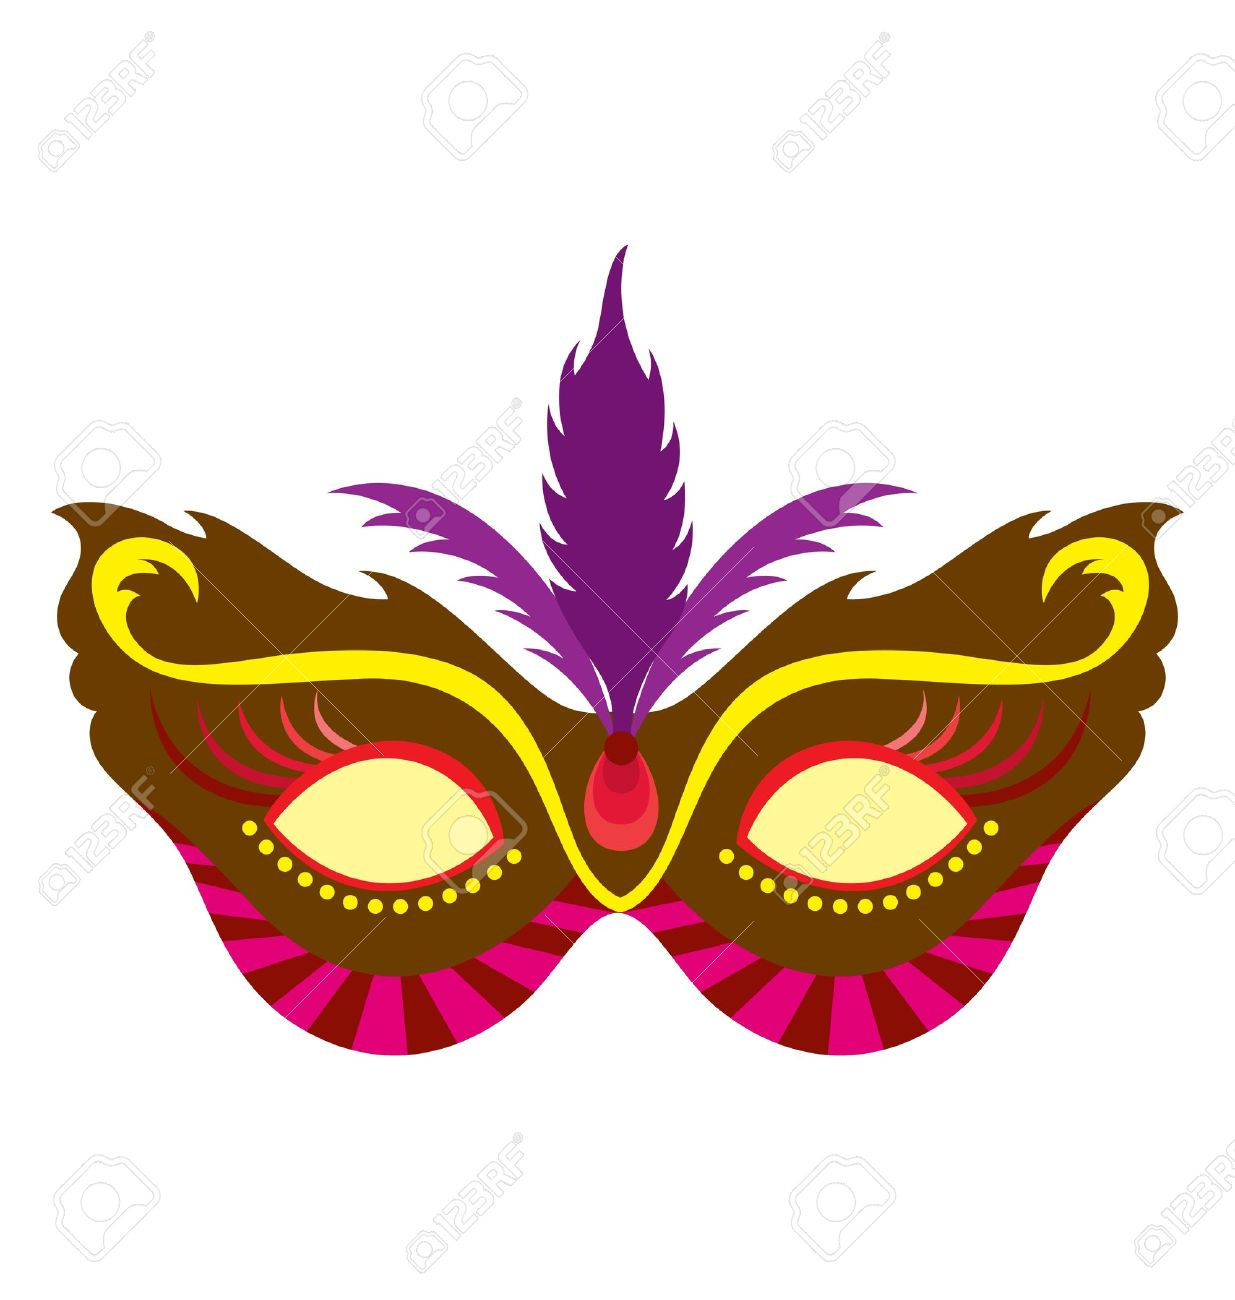 a mardi gras mask illustrated with striking colors and shapes rh 123rf com mardi gras vector art free mardi gras vector art